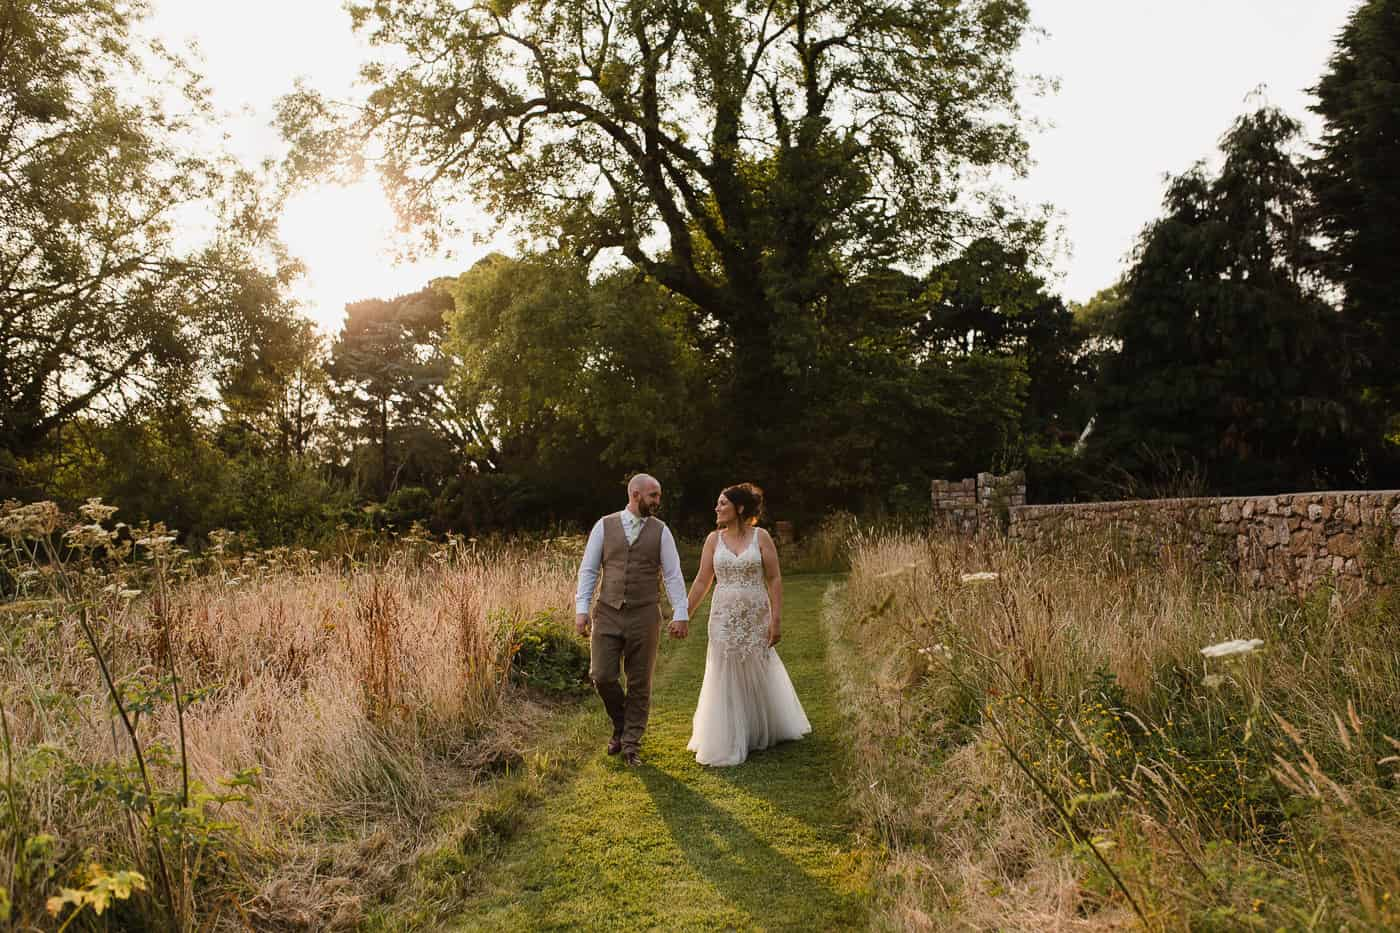 bride and groom walking at golden hour